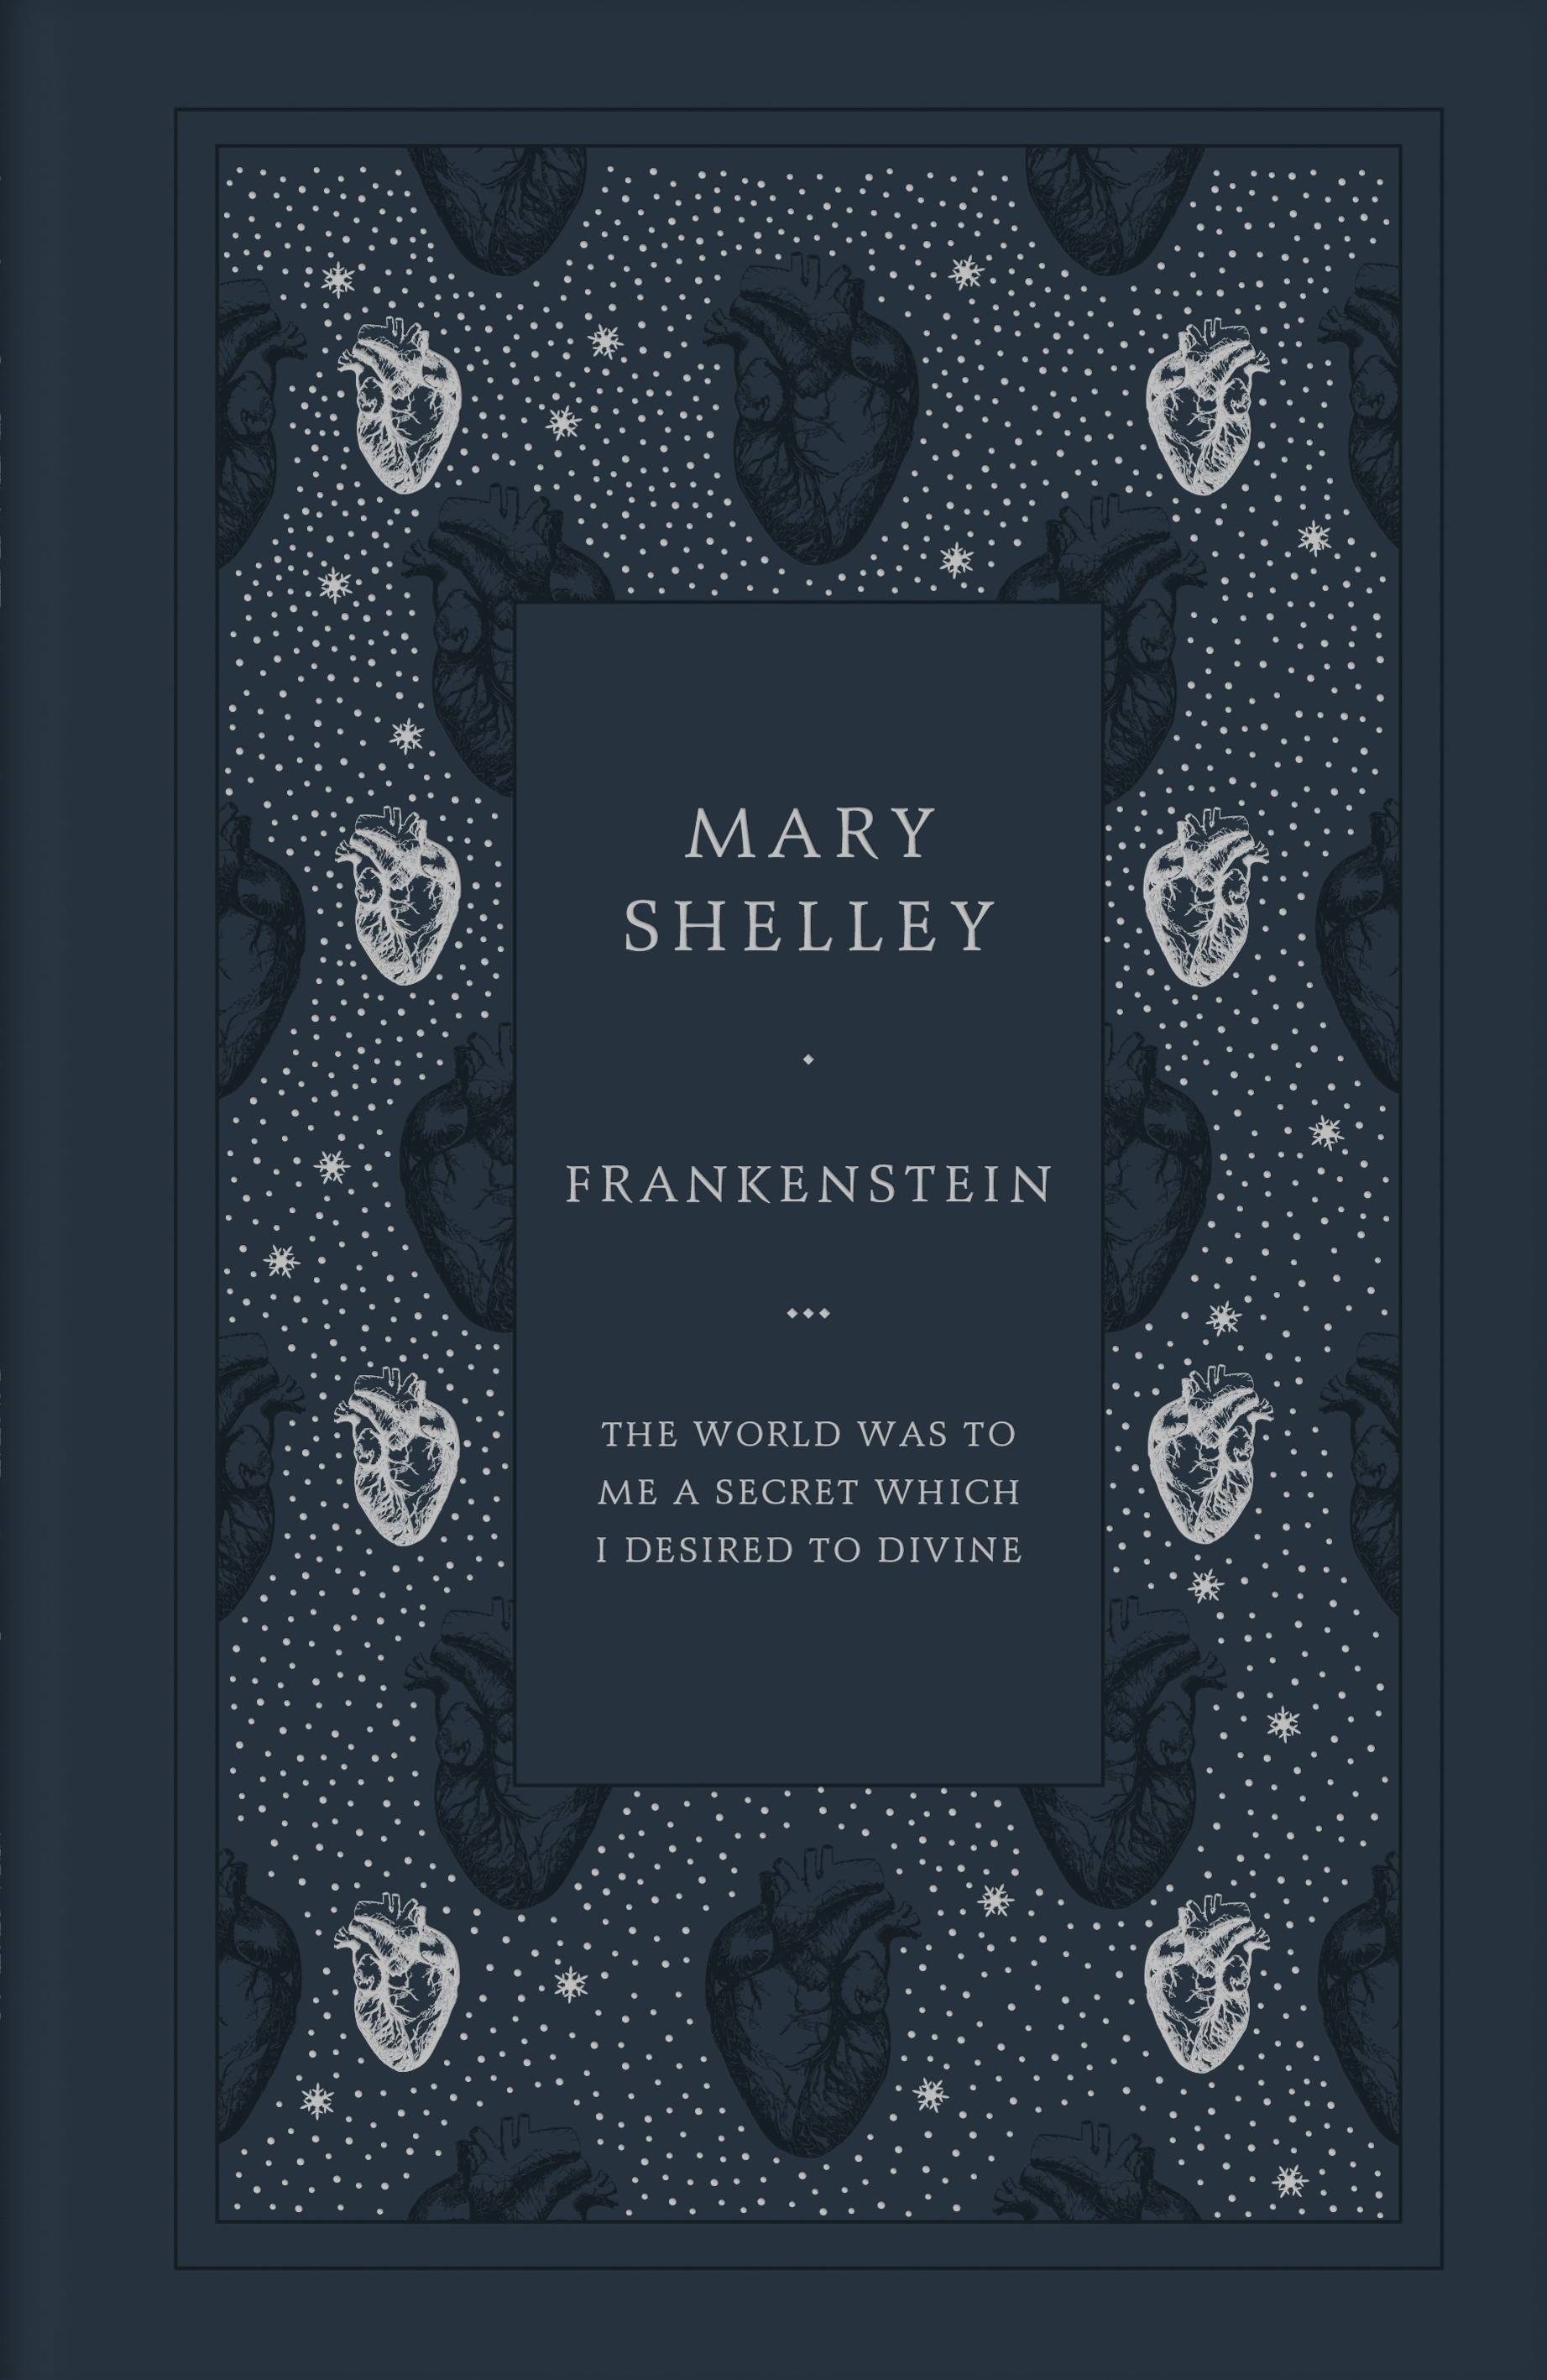 Image result for frankenstein book cover penguin